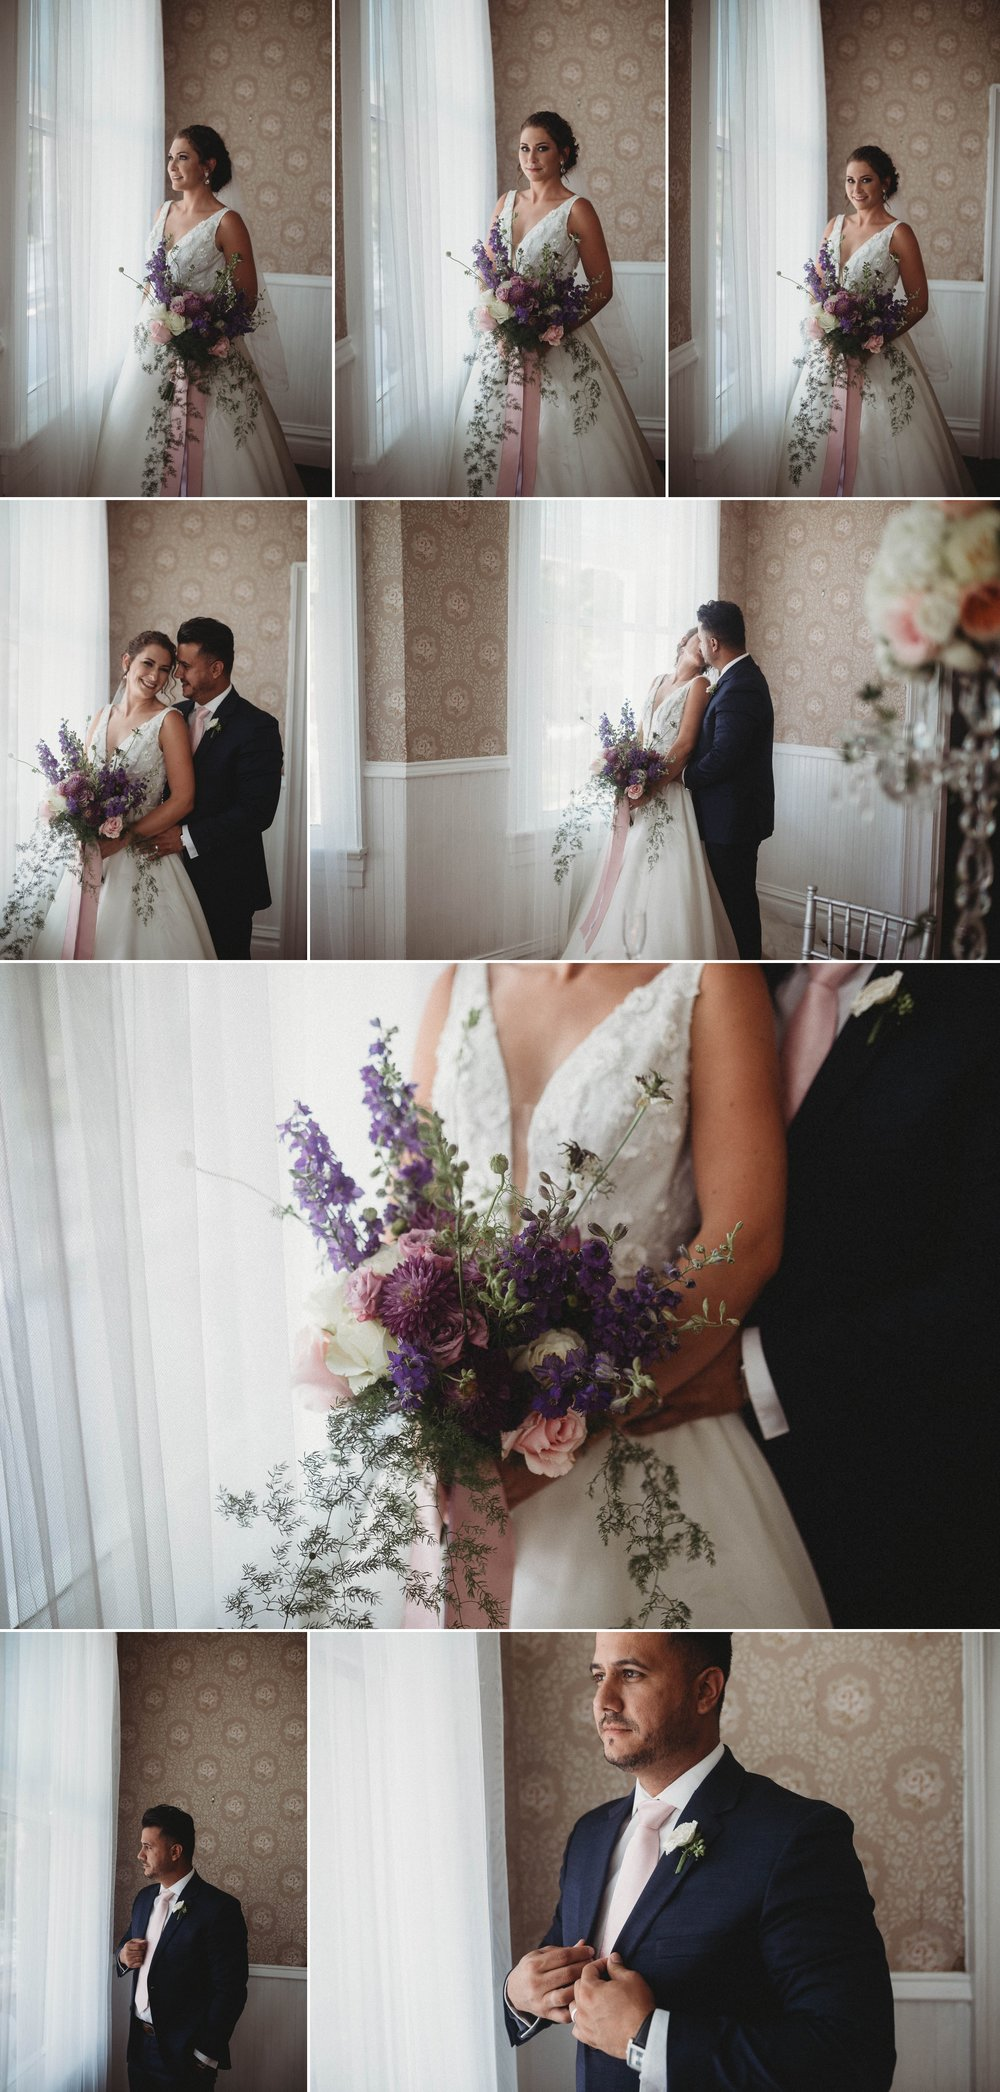 Portraits of Bride and Groom in front of a Window in a old southern mansion, Raleigh North Carolina Wedding Photographer